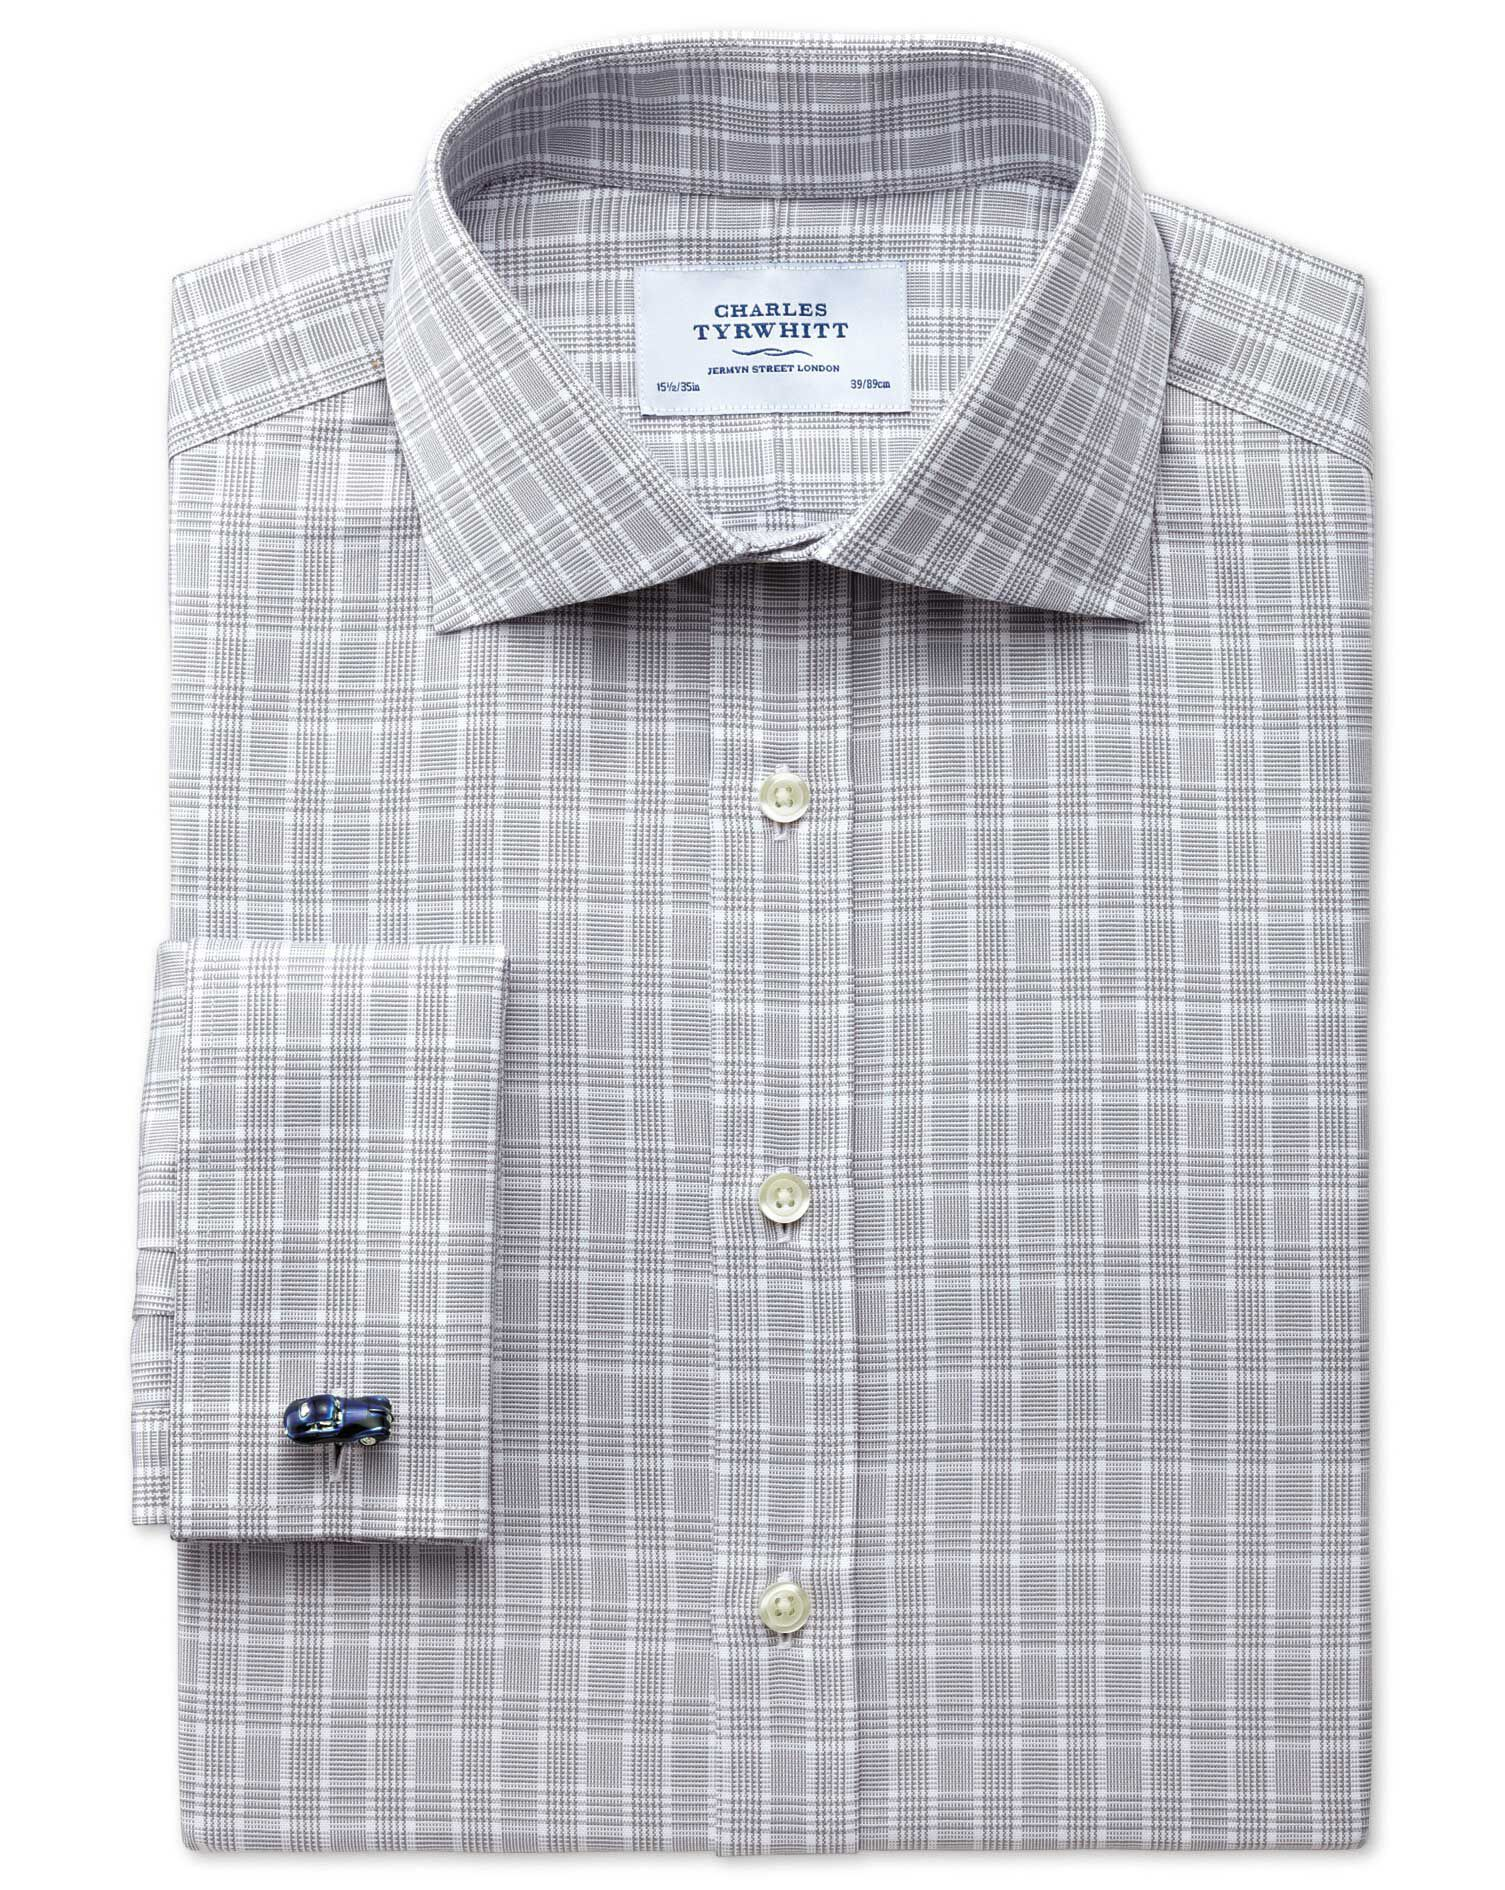 Classic Fit Prince Of Wales Silver Cotton Formal Shirt Single Cuff Size 16.5/38 by Charles Tyrwhitt